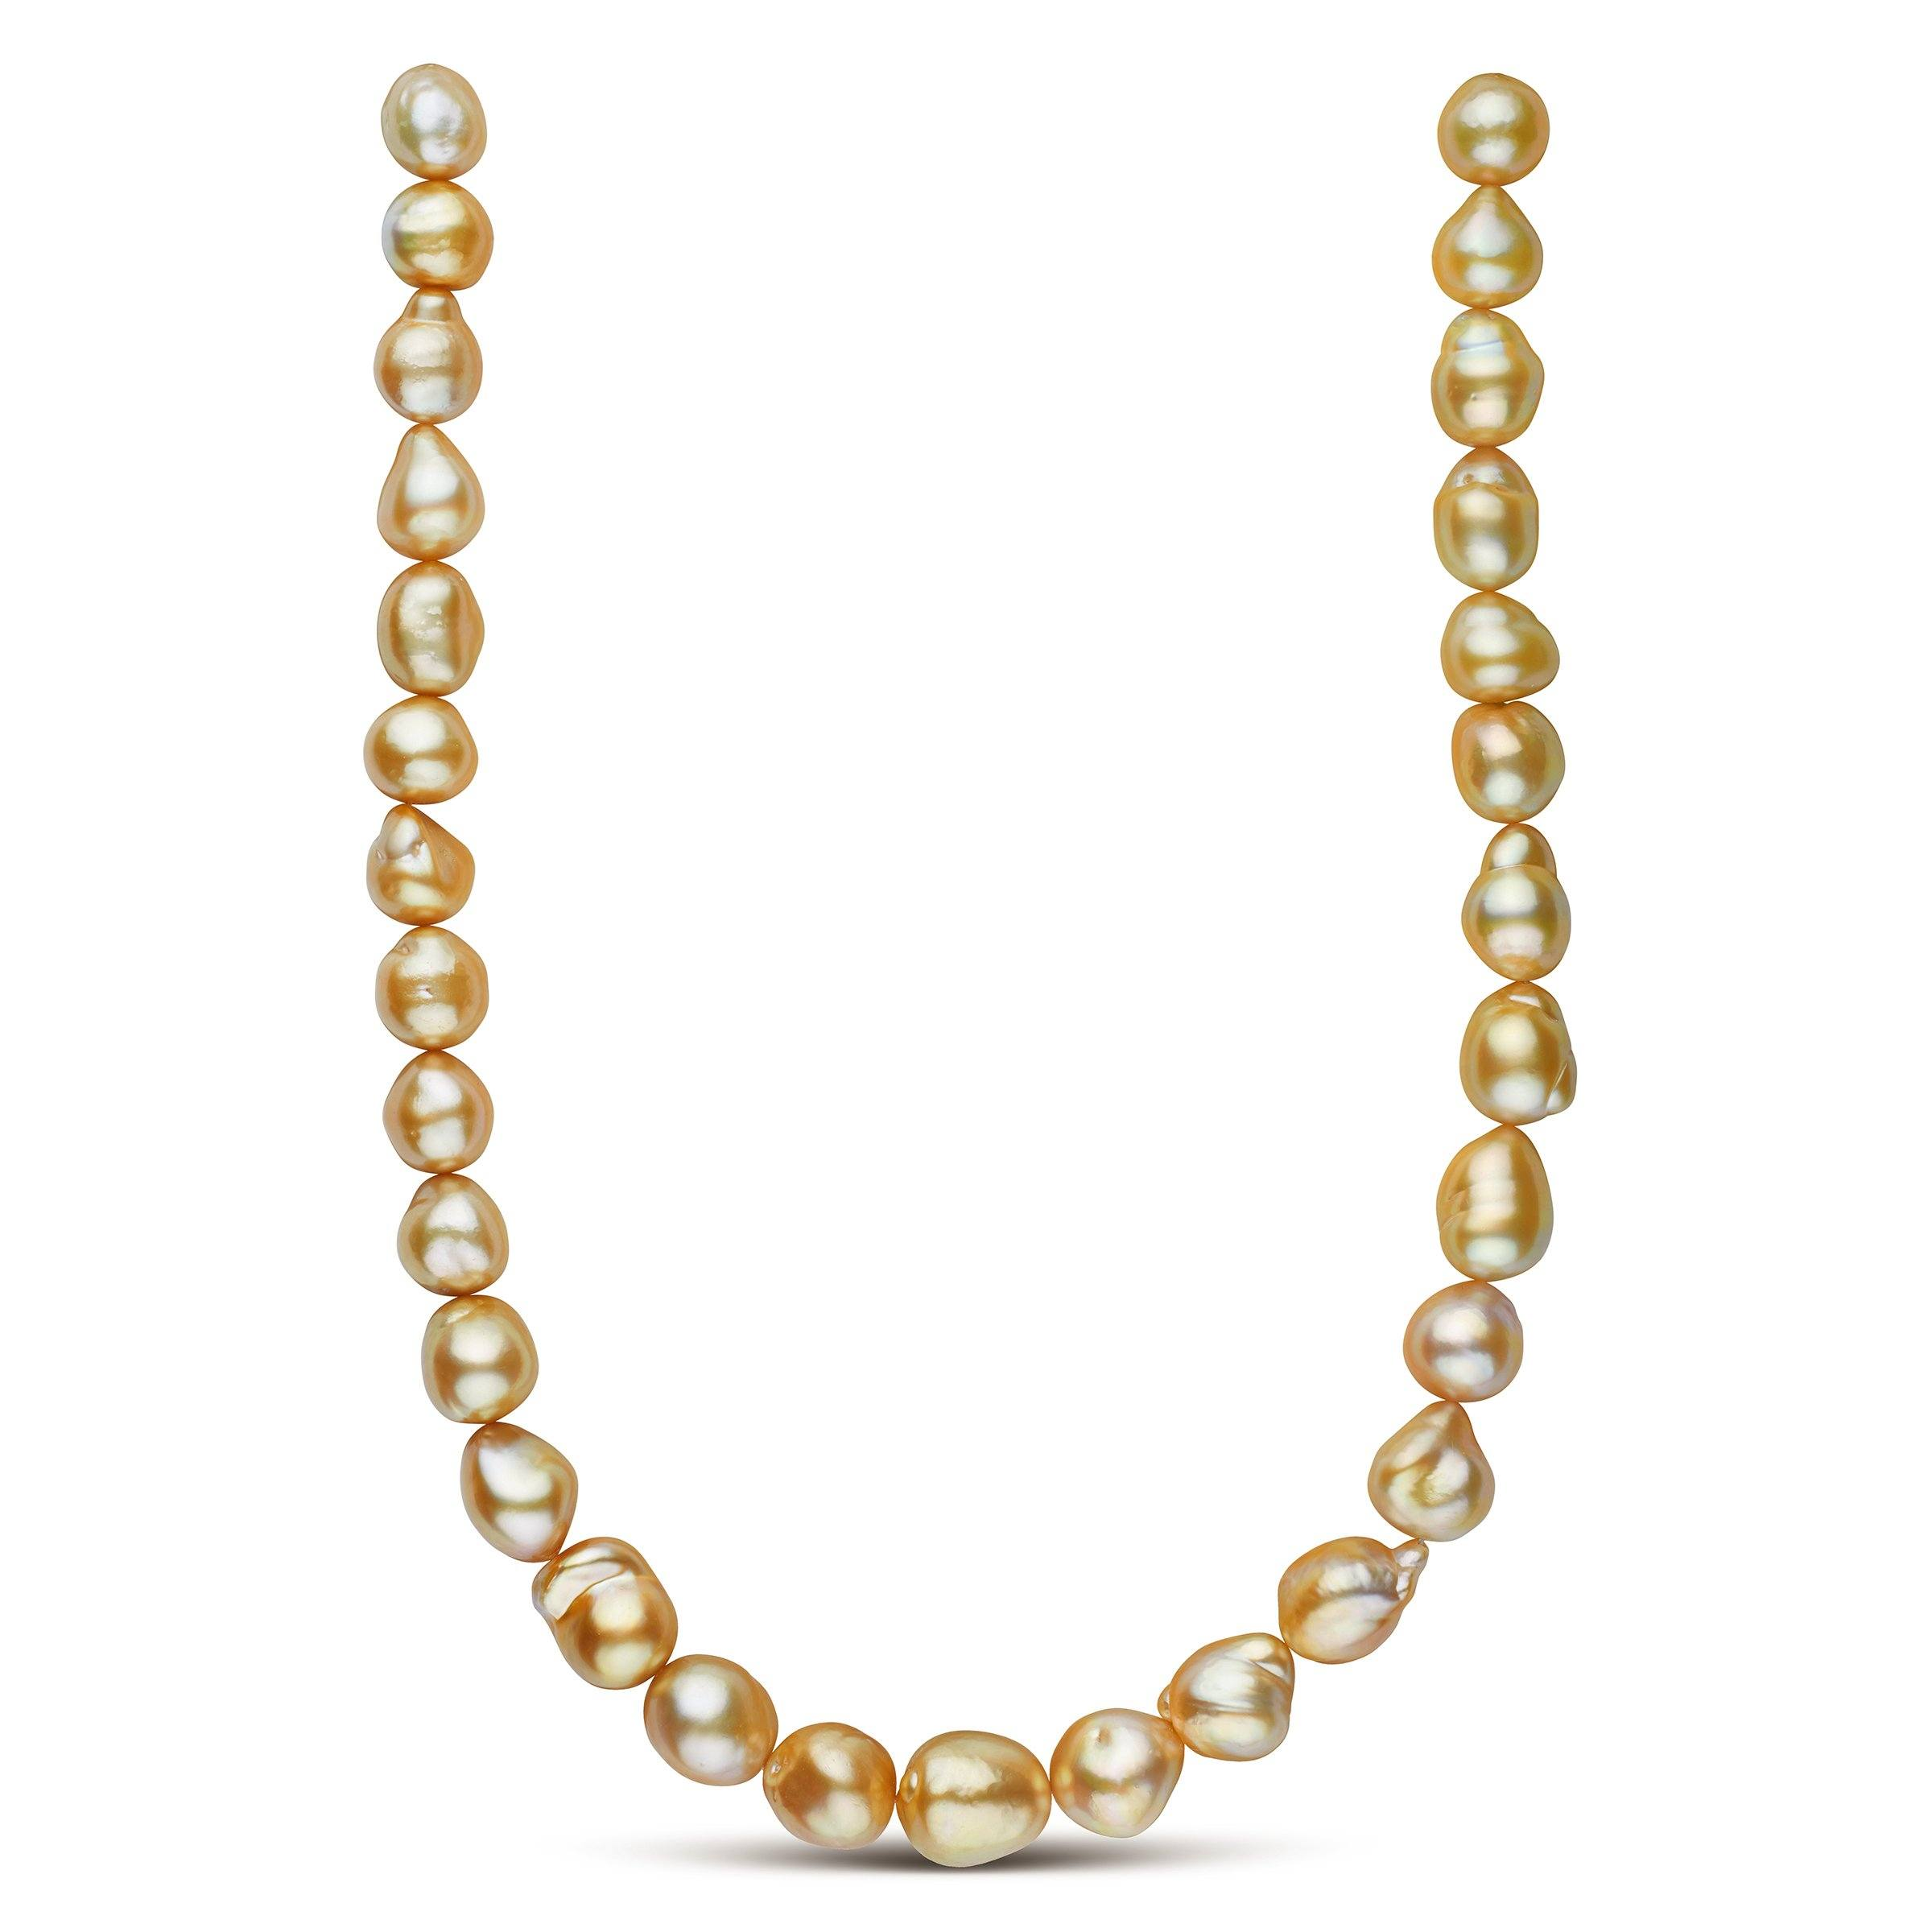 Freely-formed Philippine Gold South Sea Pearl Strand 11.2-14 .6 mm